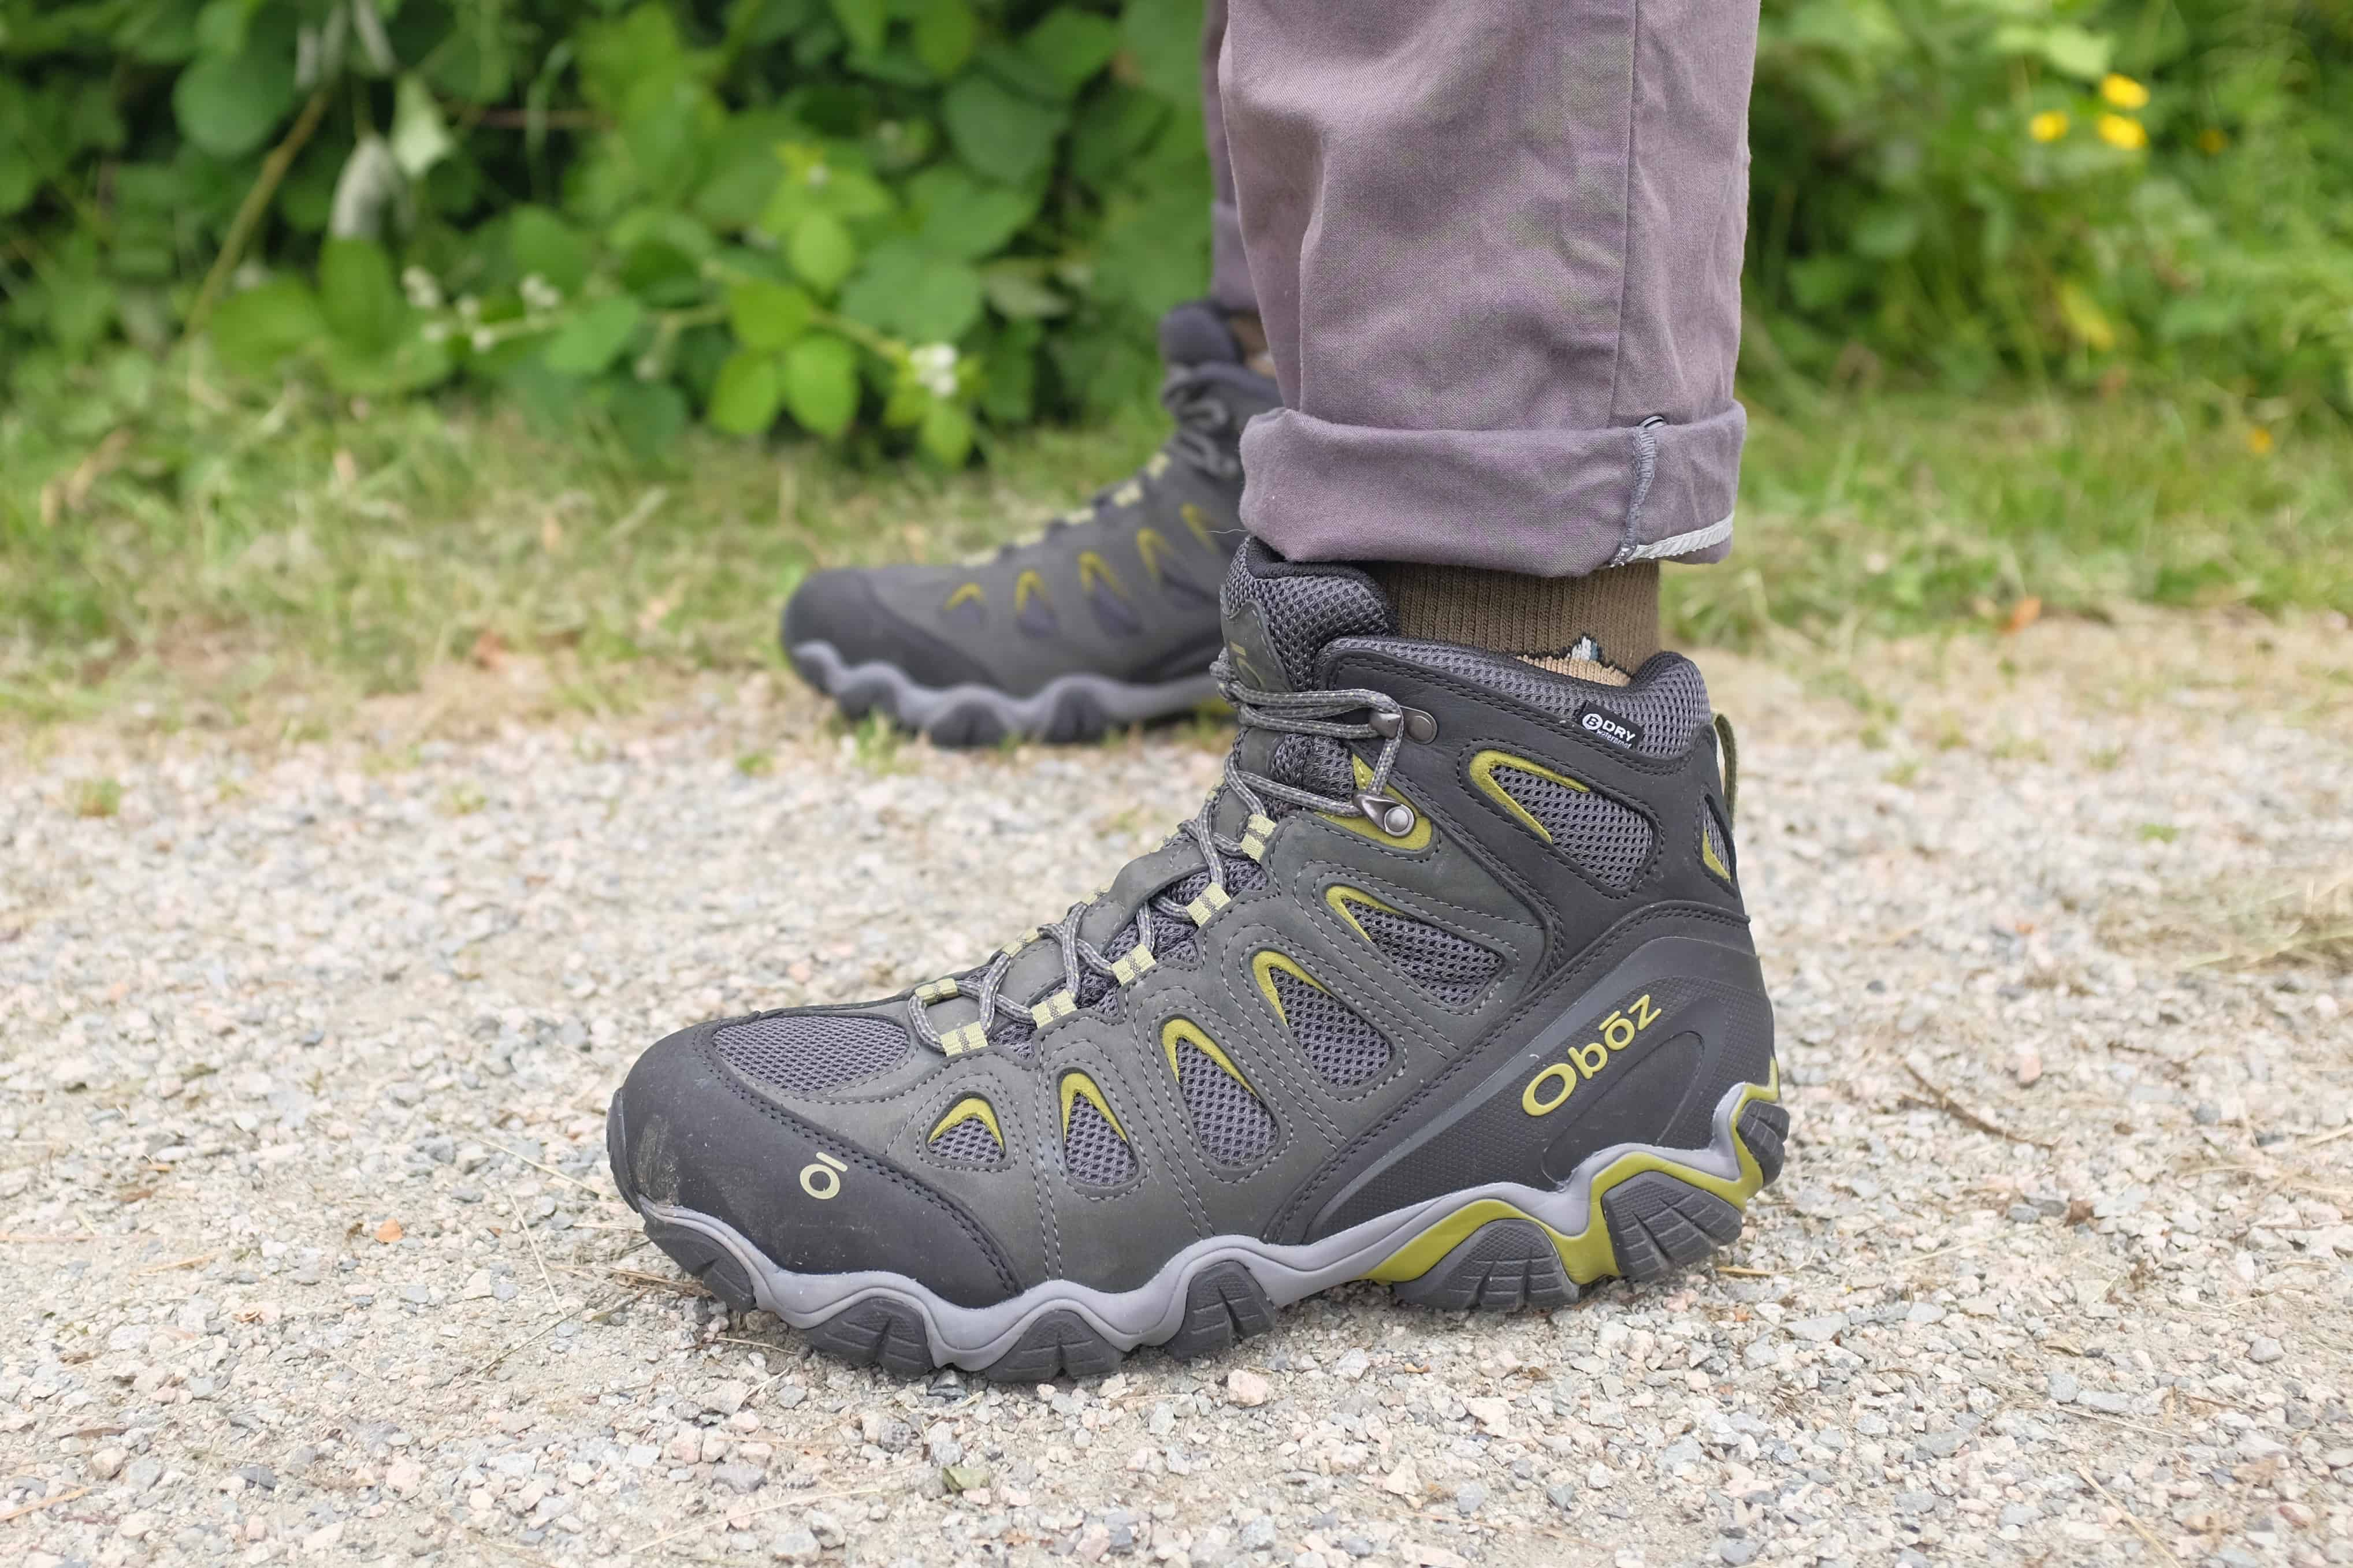 The Oboz Sawtooth II Mid Waterproof are